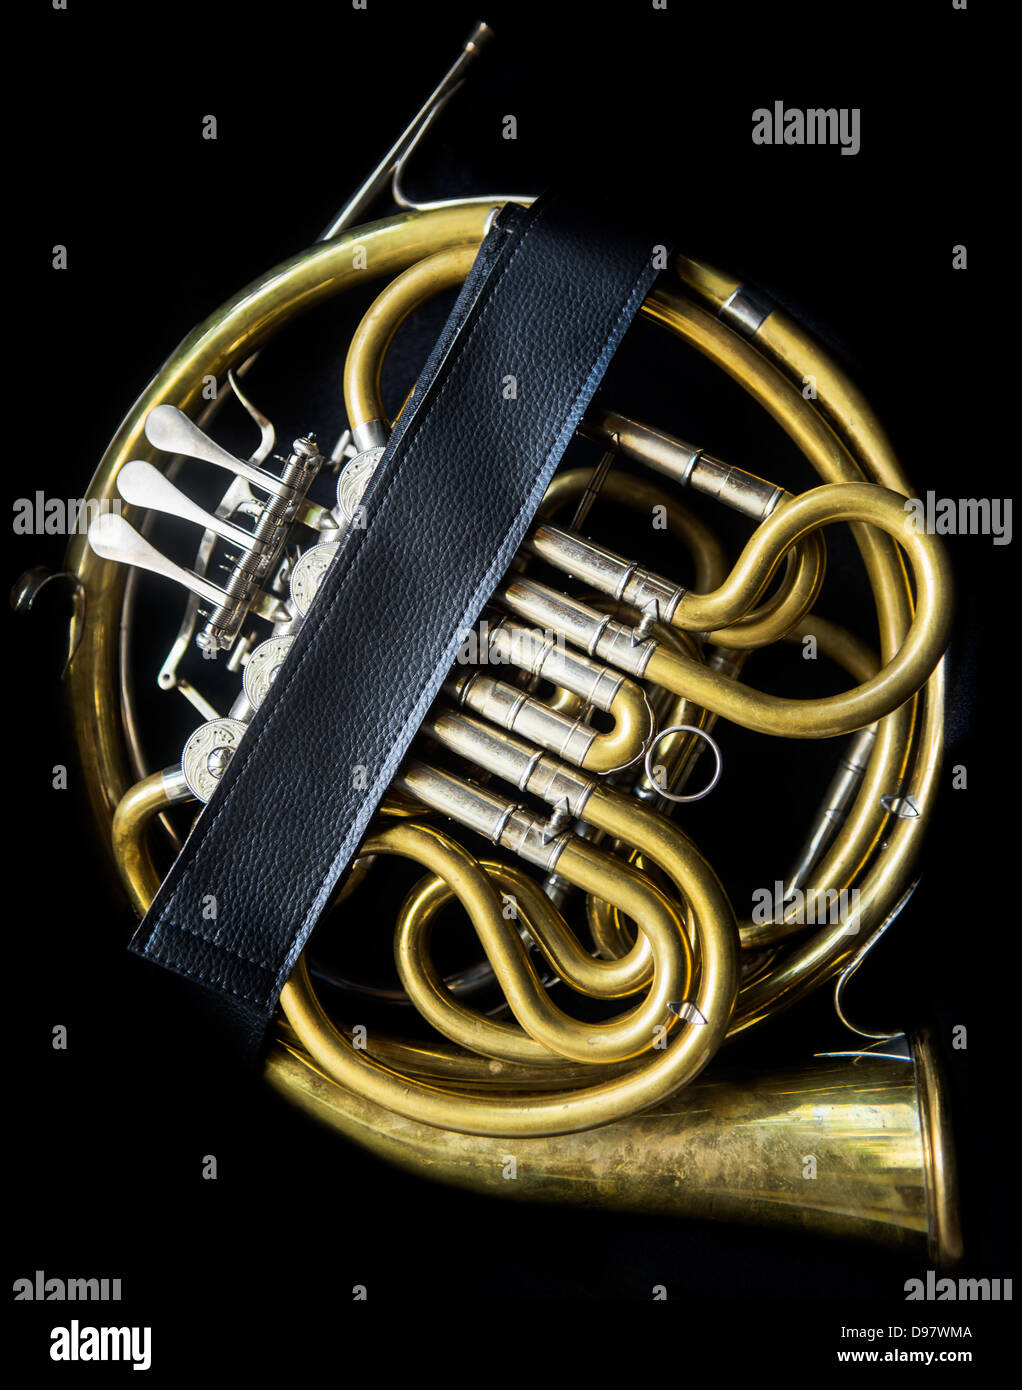 Golden french horn without a bell and mouthpiece in the horn case - Stock Image